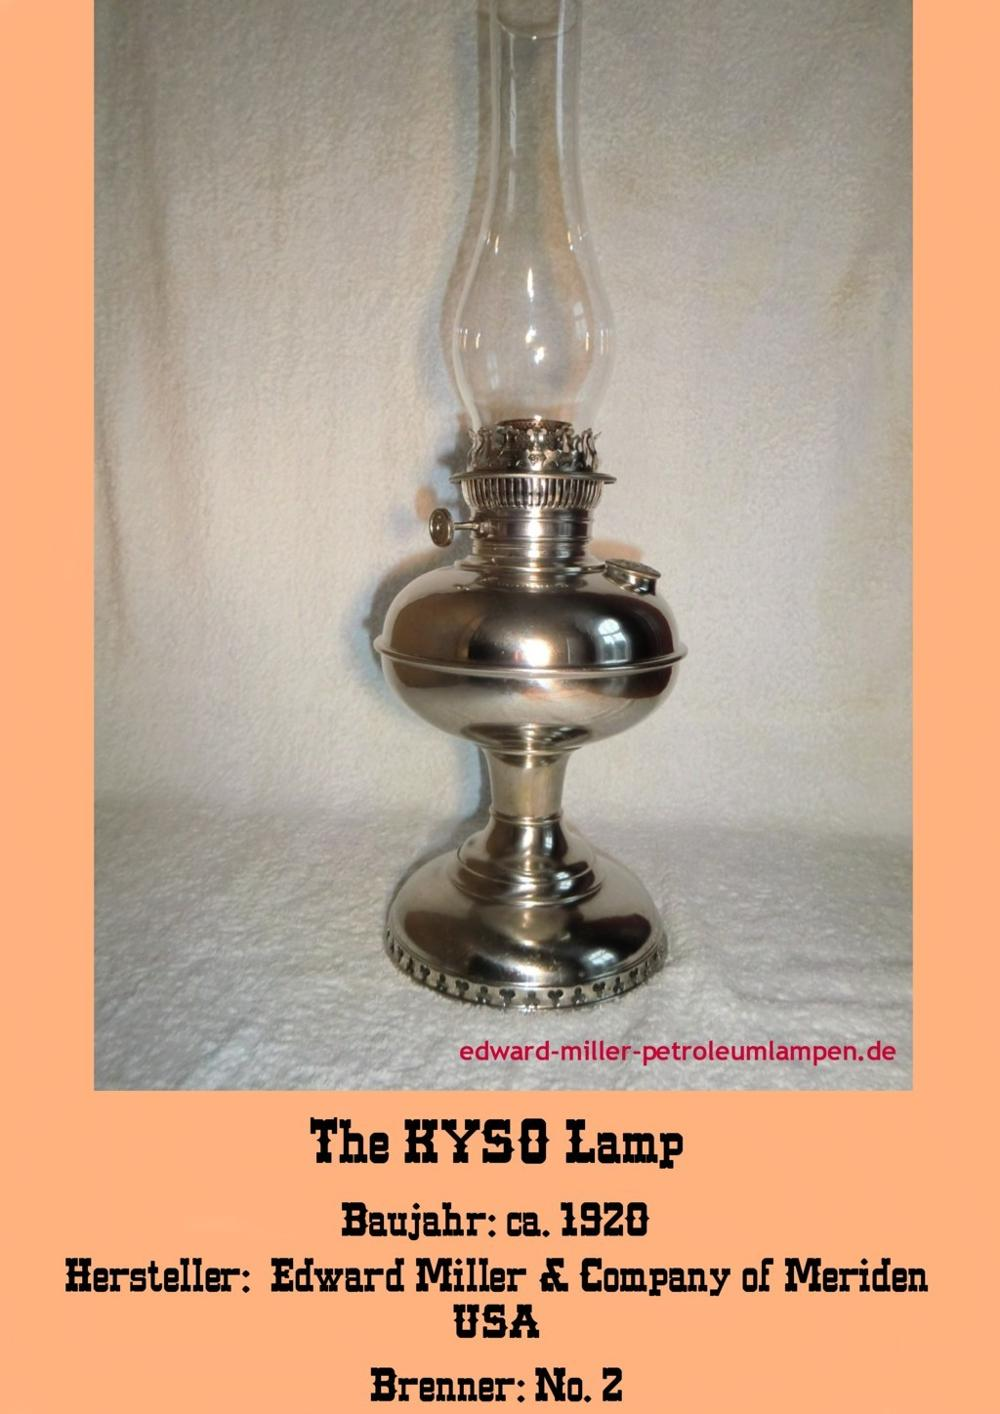 THE KYSO Lamp